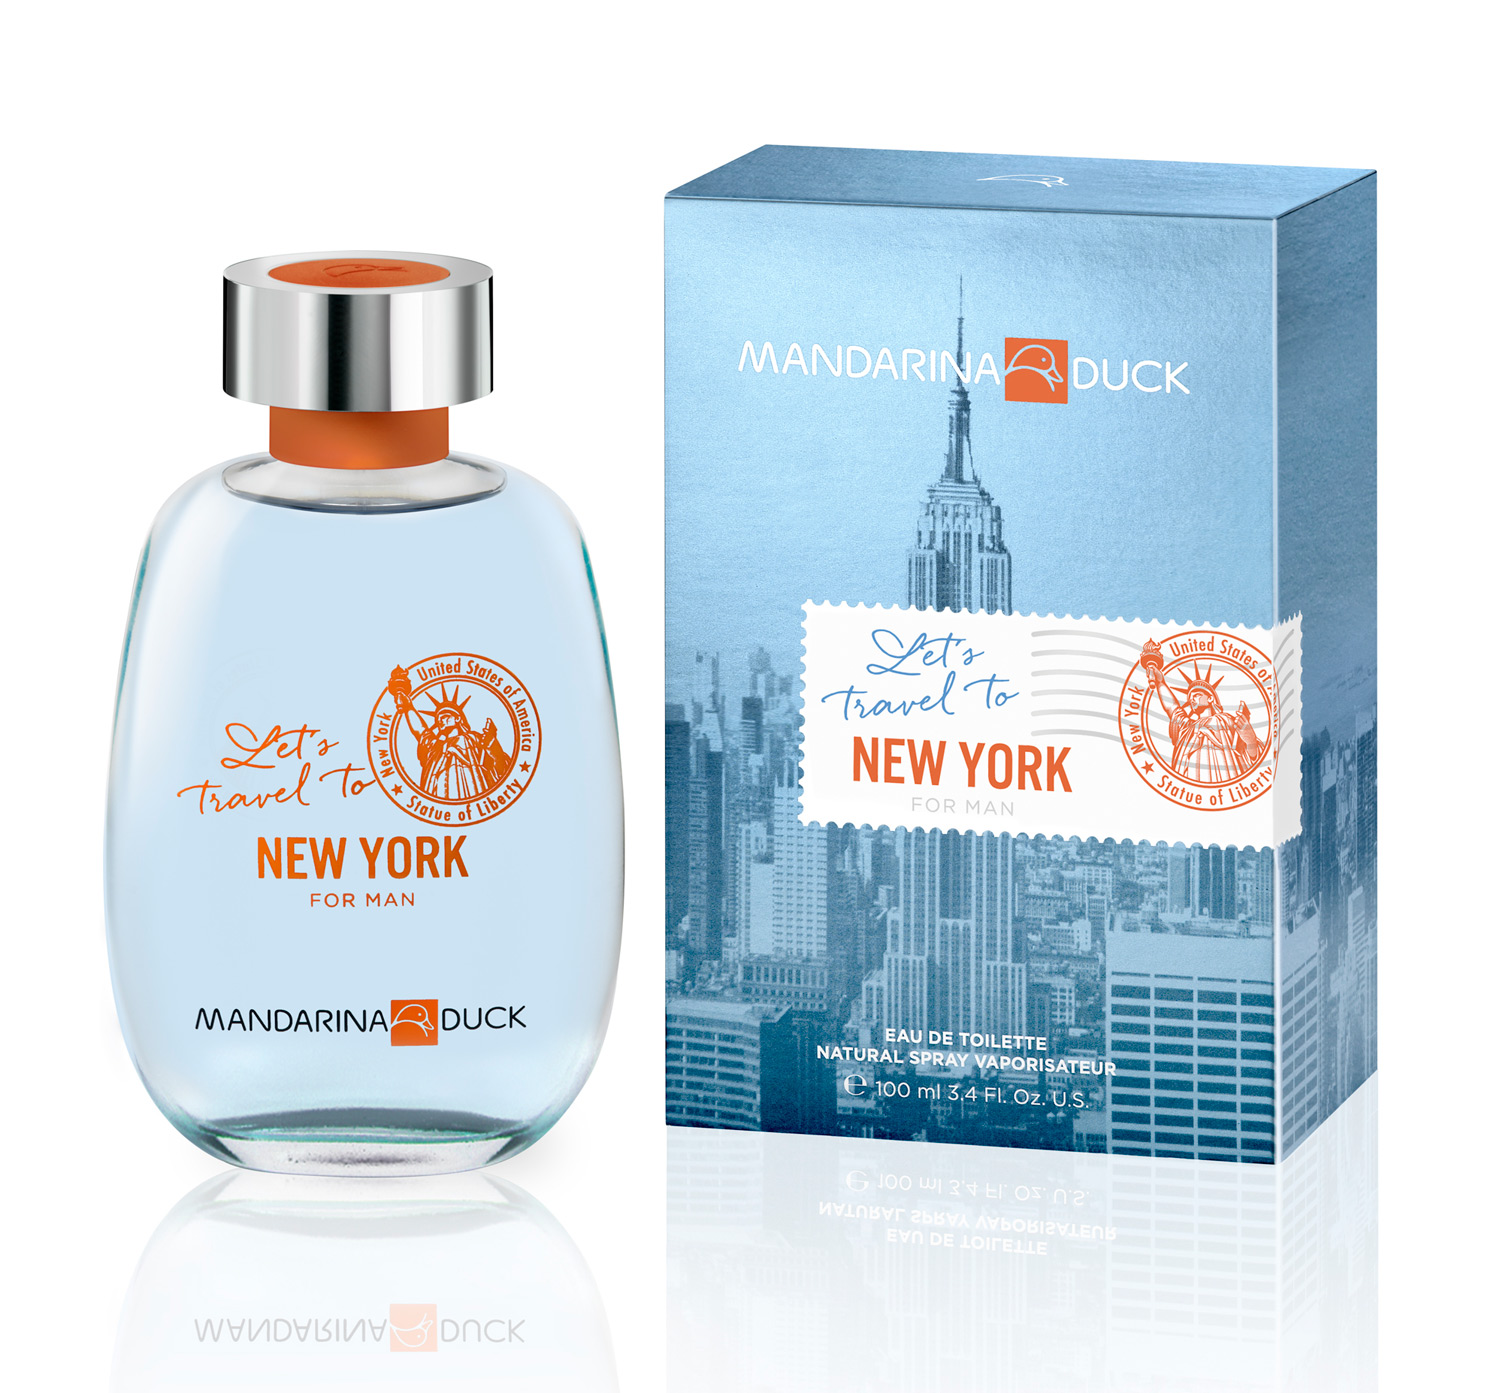 Let 39 S Travel To New York For Man Mandarina Duck Cologne